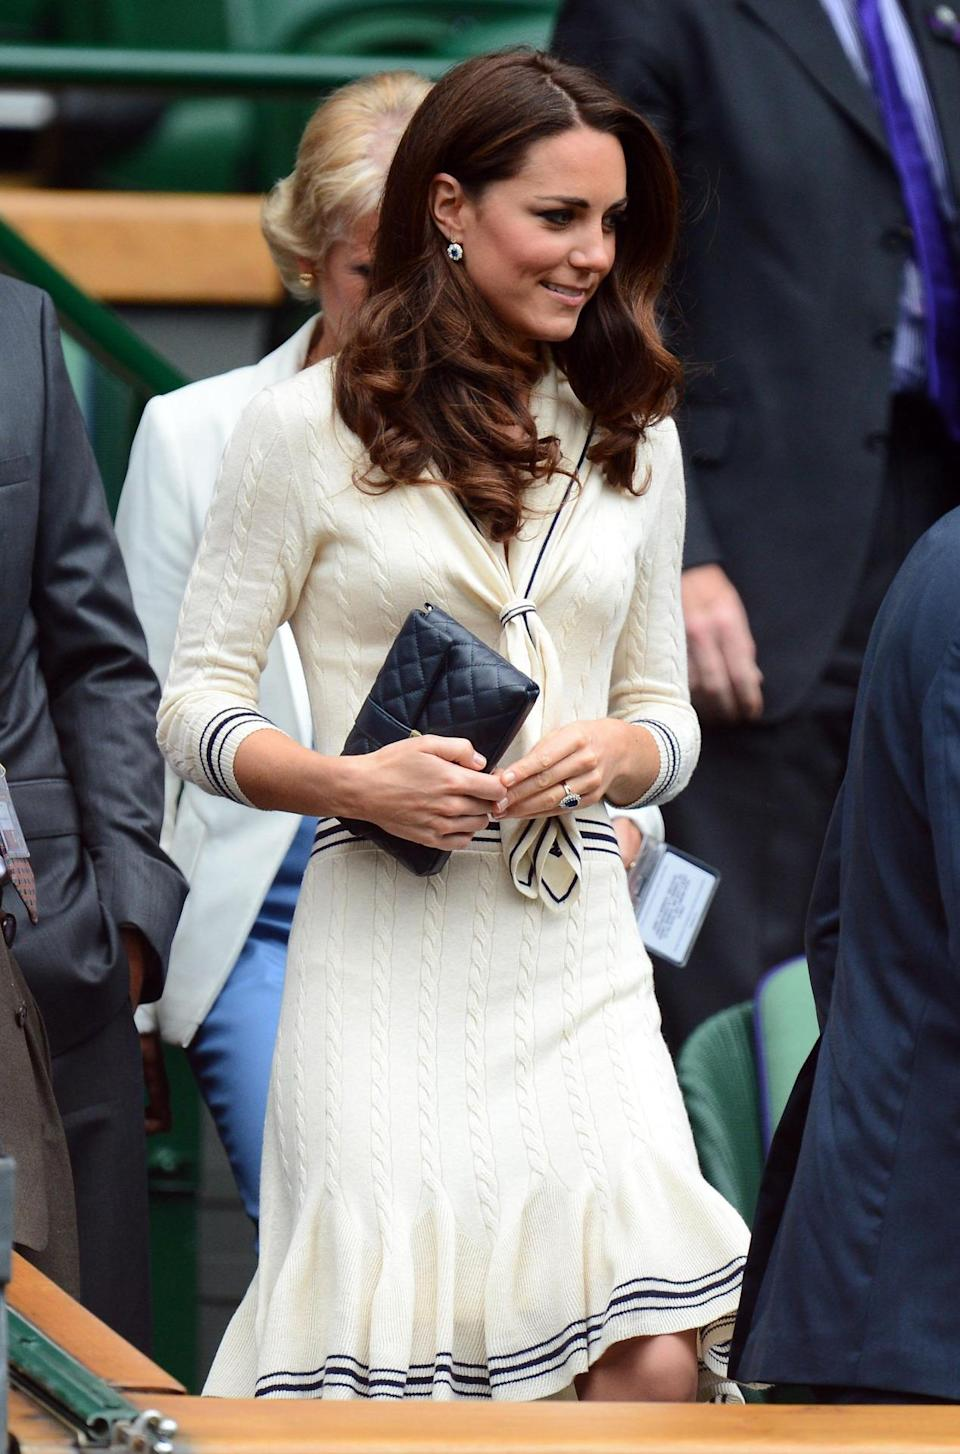 <p>Kate wore a knitted sailor dress by Alexander McQueen to Wimbledon. She carried a quilted Jaeger bag to finish off the look.</p><p><i>[Photo: PA]</i></p>